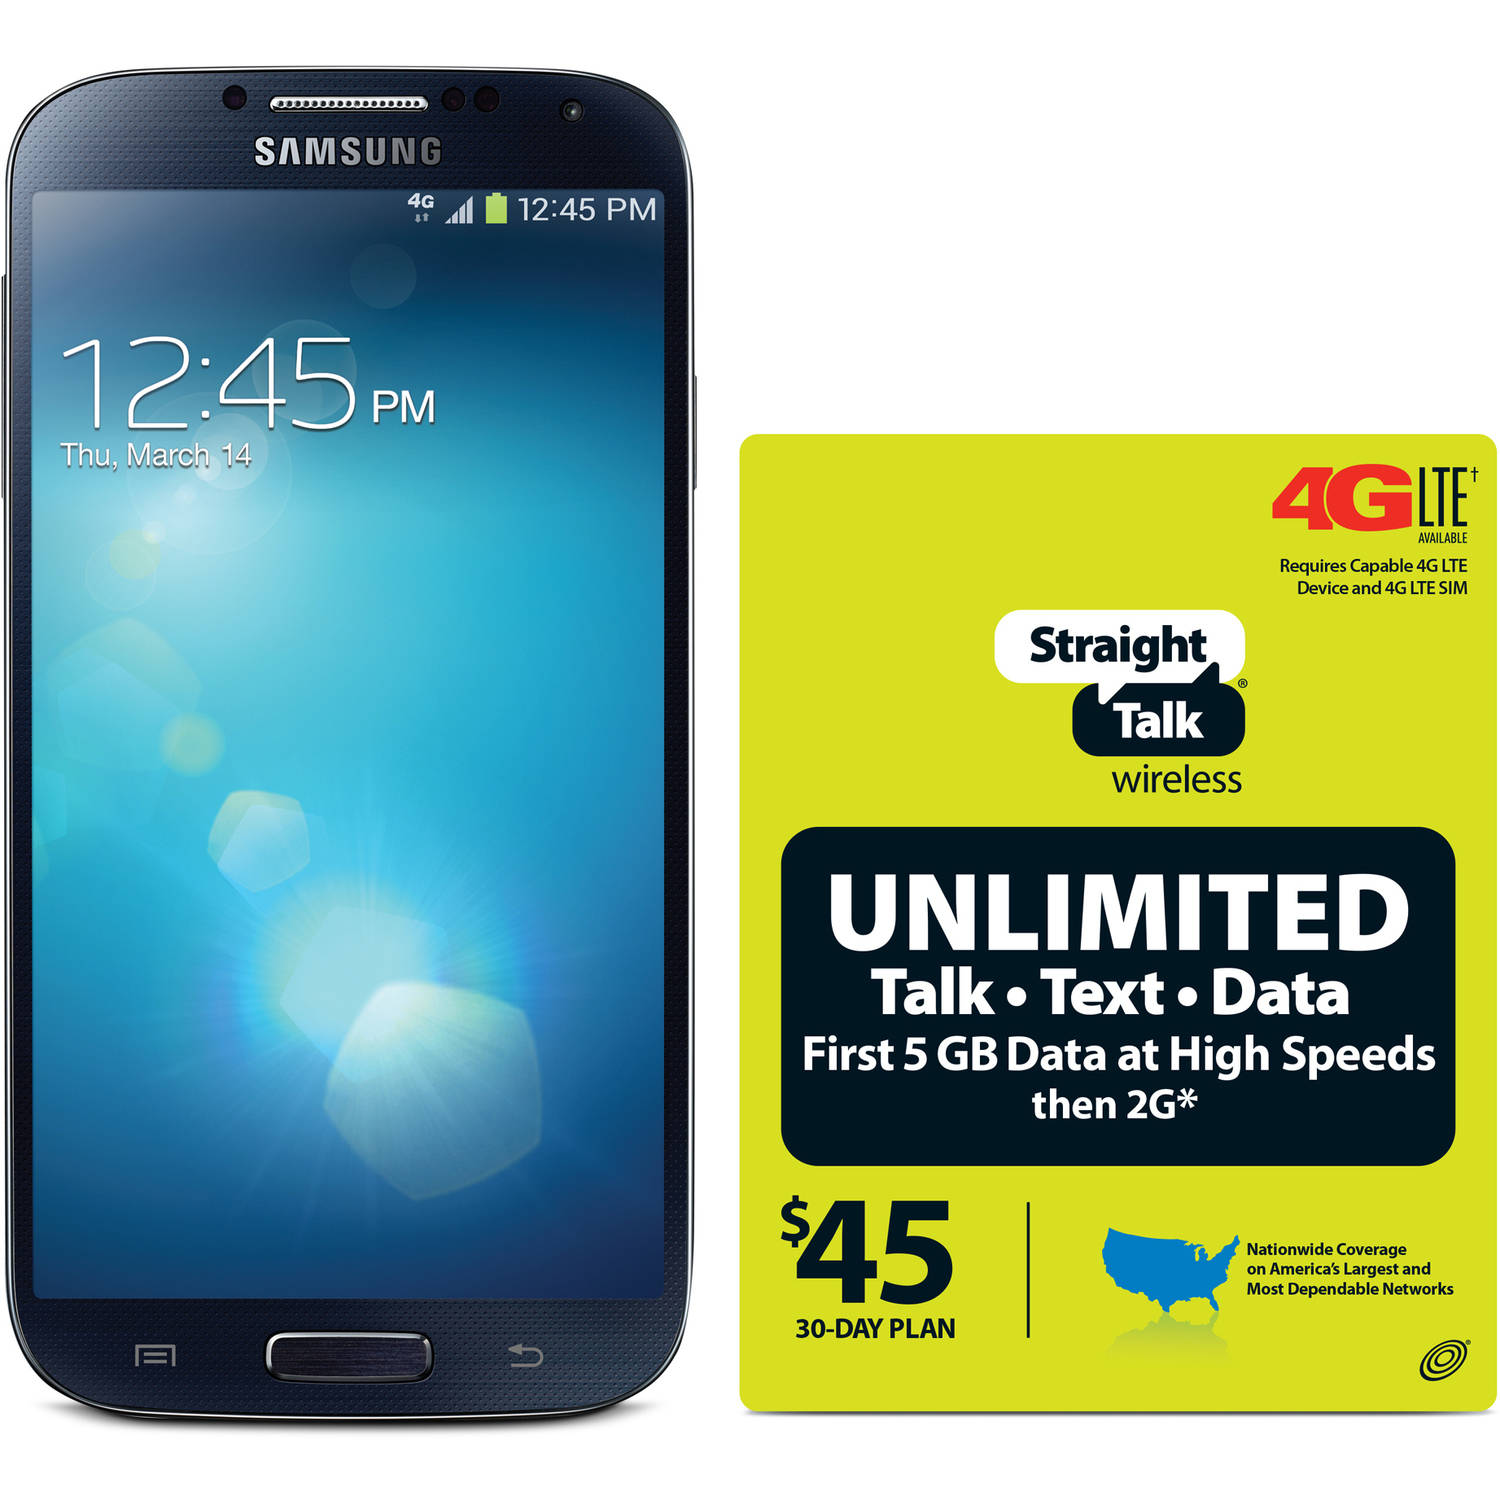 Straight Talk Samsung Galaxy S4 4G LTE Android Refurbished Prepaid Smartphone w/ Bonus $45 30-Day Plan